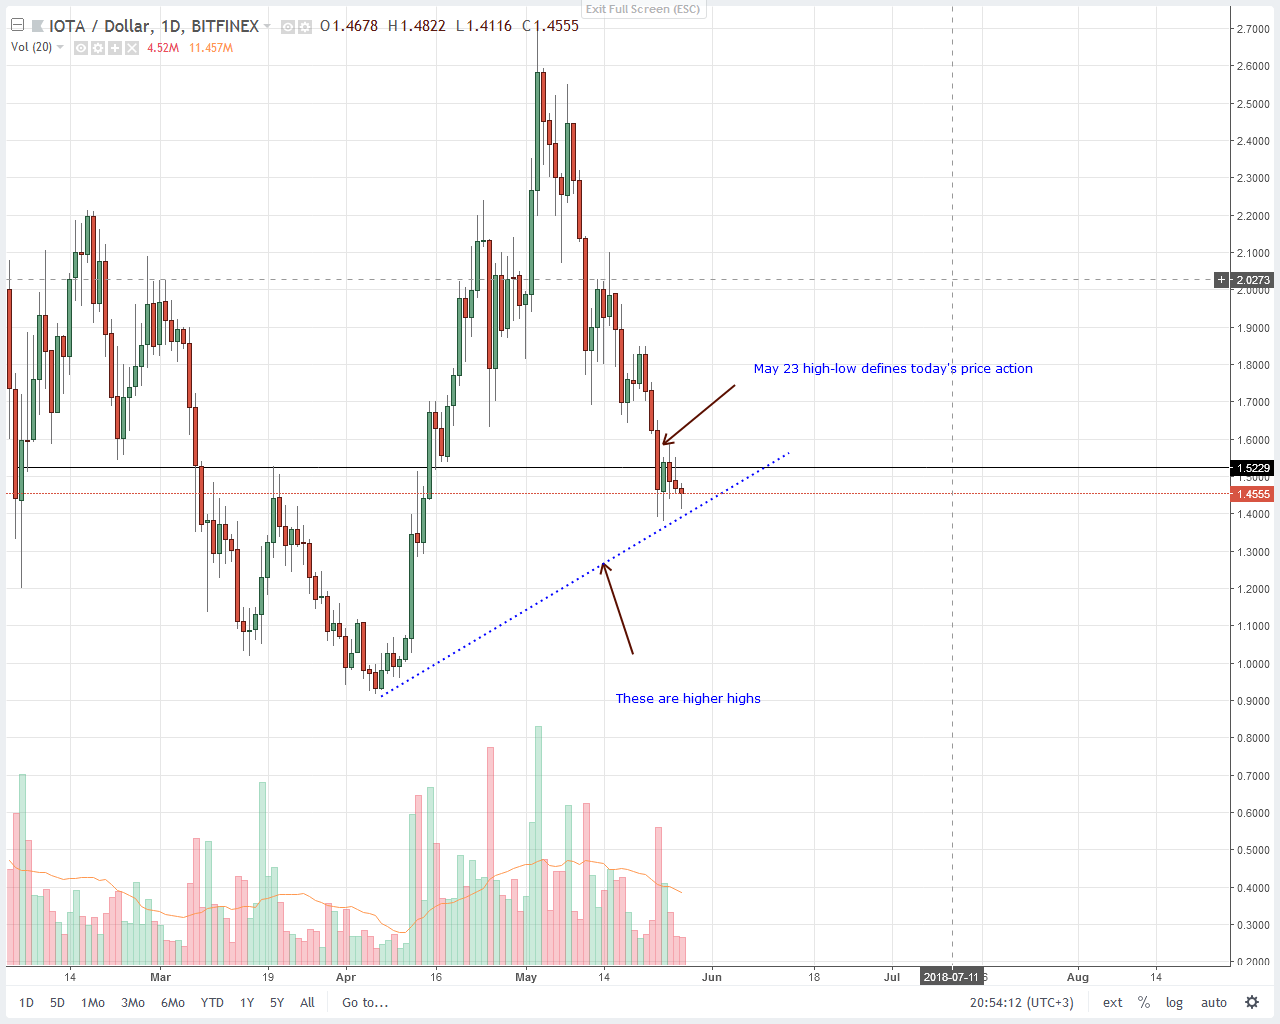 IOTA (IOT) Price Technical Analysis